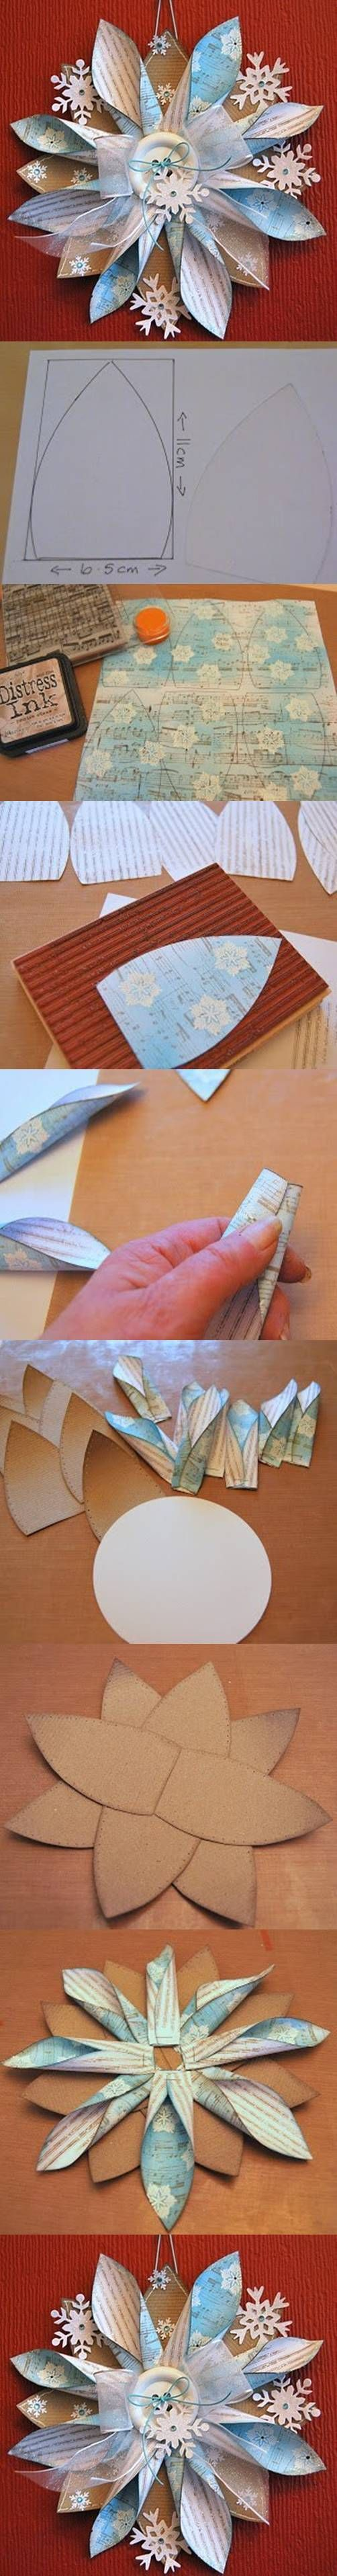 DIY Paper Flower Ornaments http://www.usefuldiy.com/diy-paper-flower-ornaments/